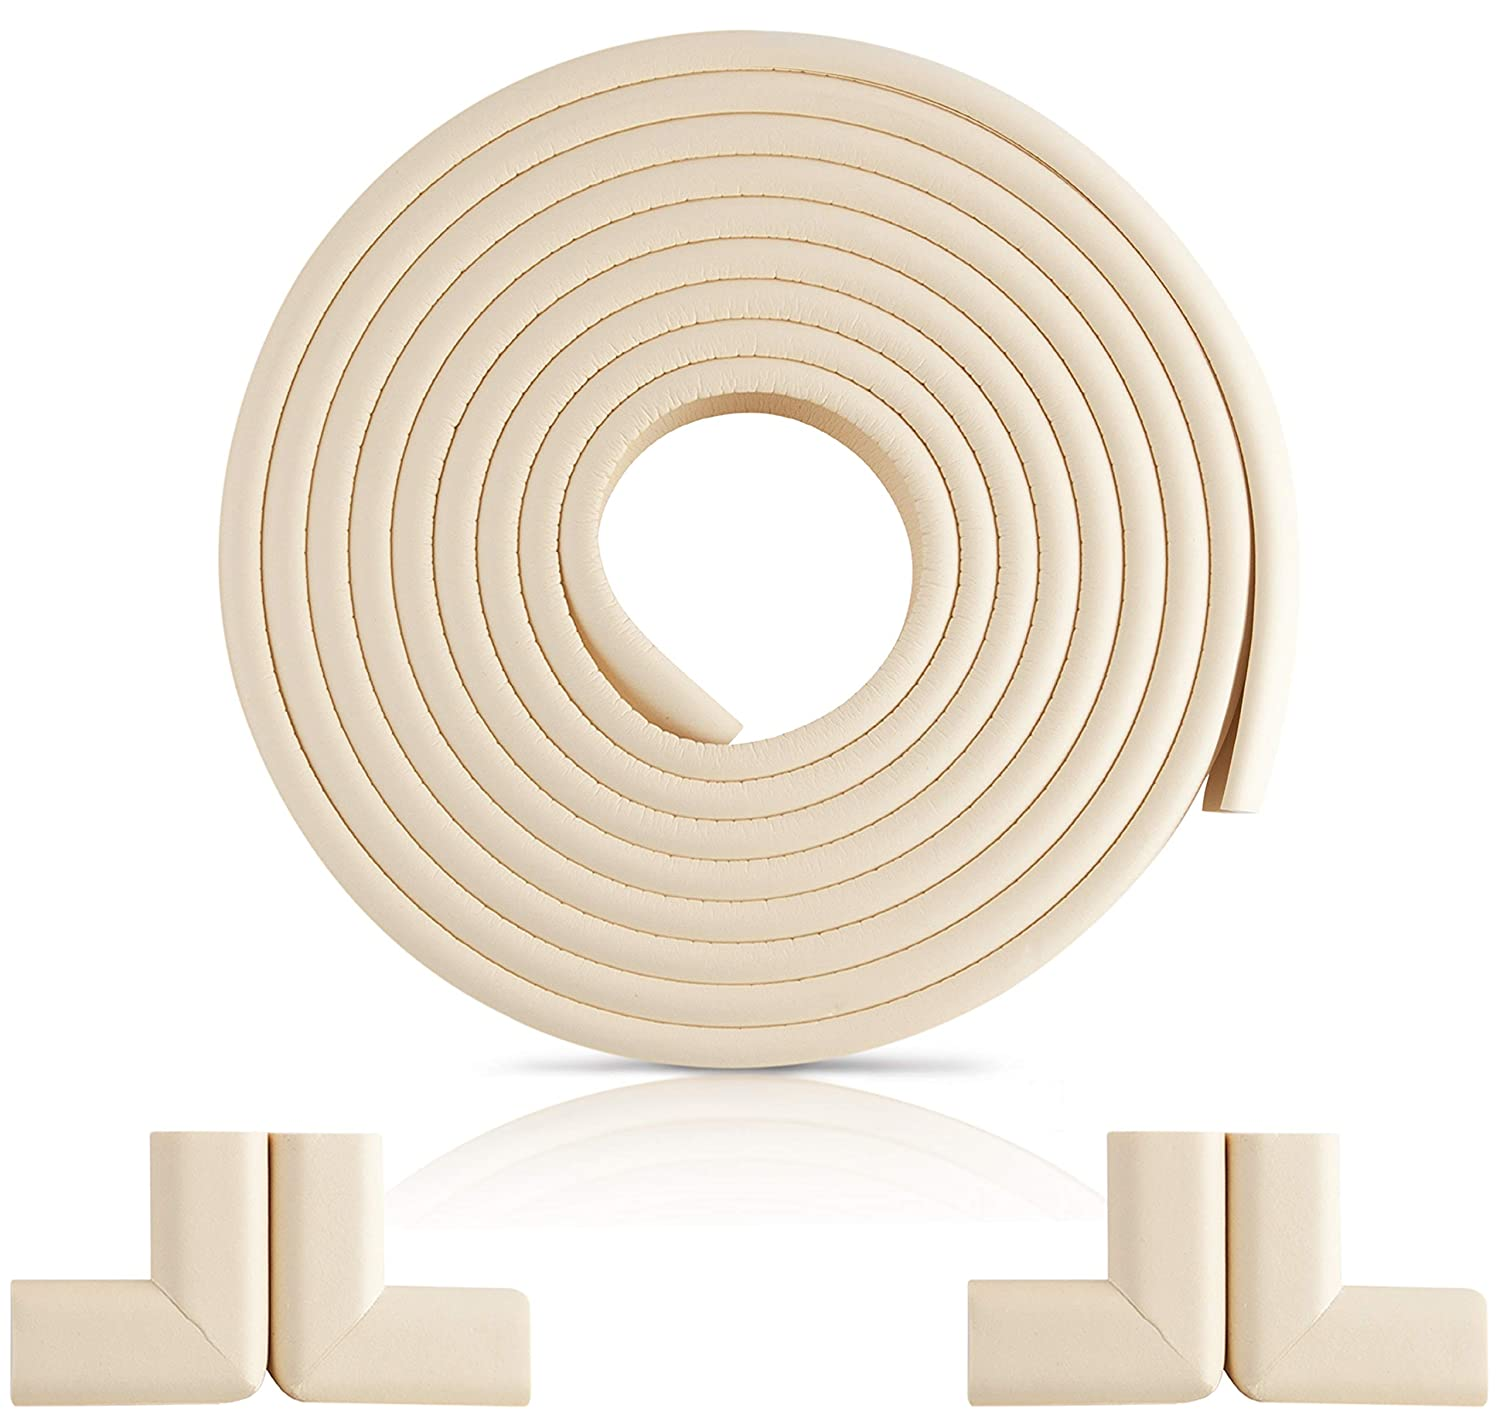 Furniture Edge and Corner Guards | 16.2ft Protective Foam Cushion | 15ft Bumper 4 Adhesive Childsafe Corners | Baby Child Proofing Foam Set and Safe for Table, Fireplace, Countertop | White